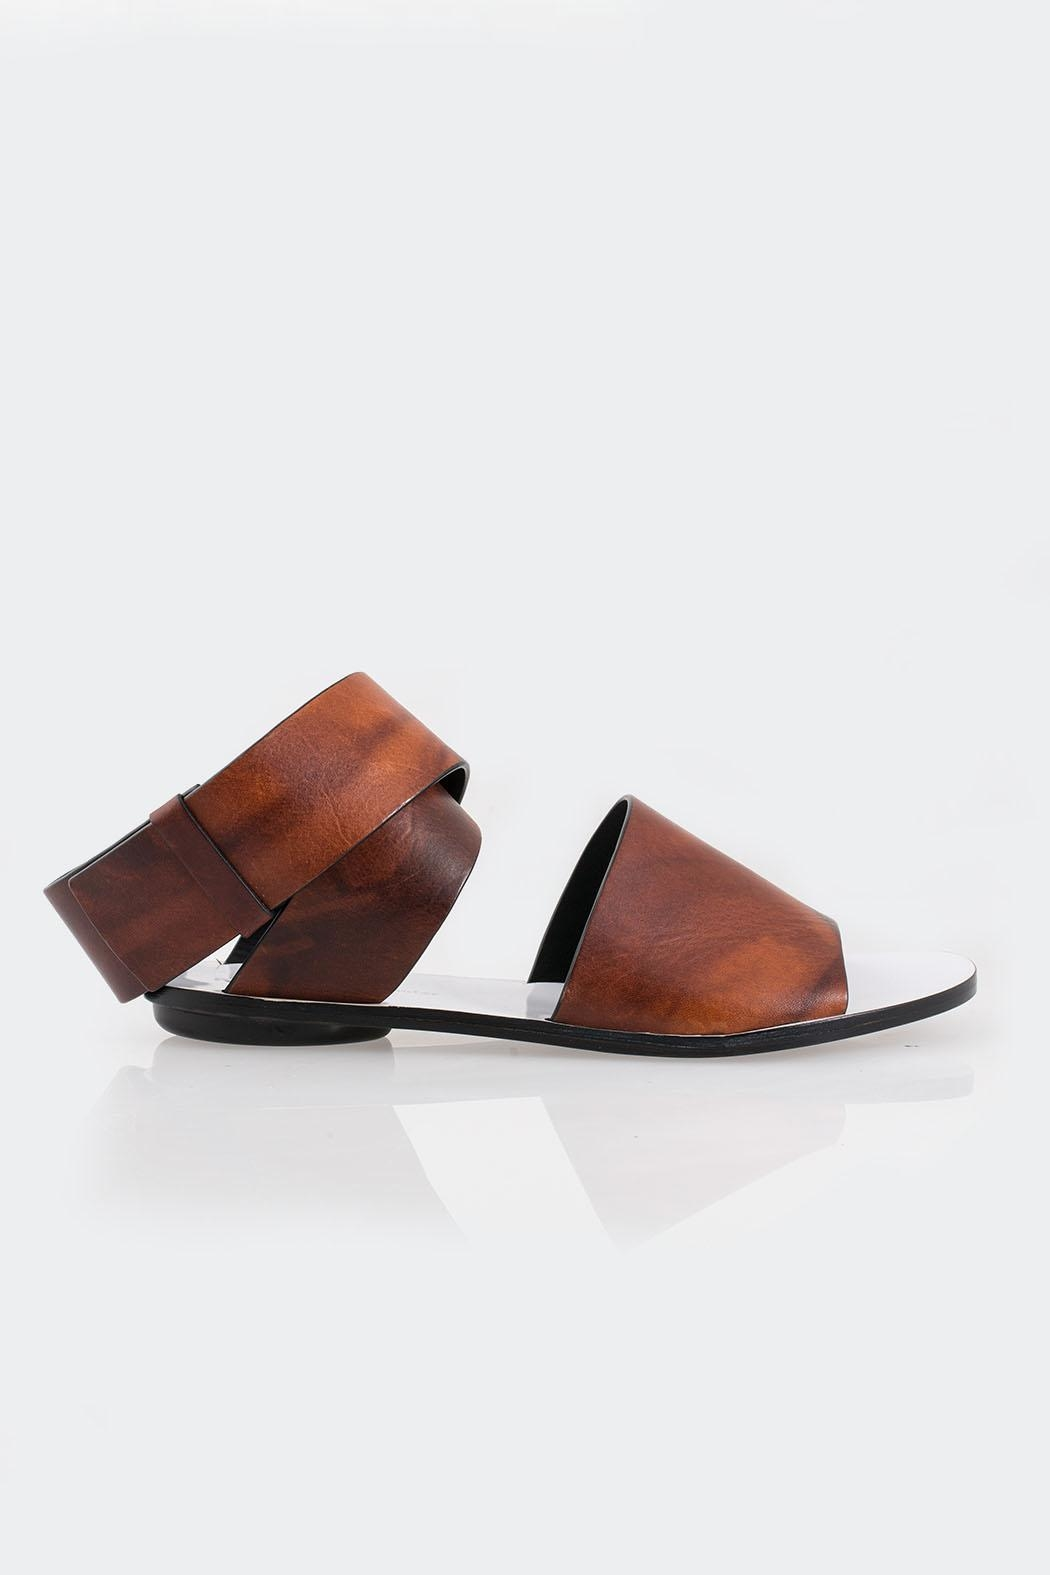 Proenza Schouler Coiled Ankle-Strap Sandal - Front Full Image